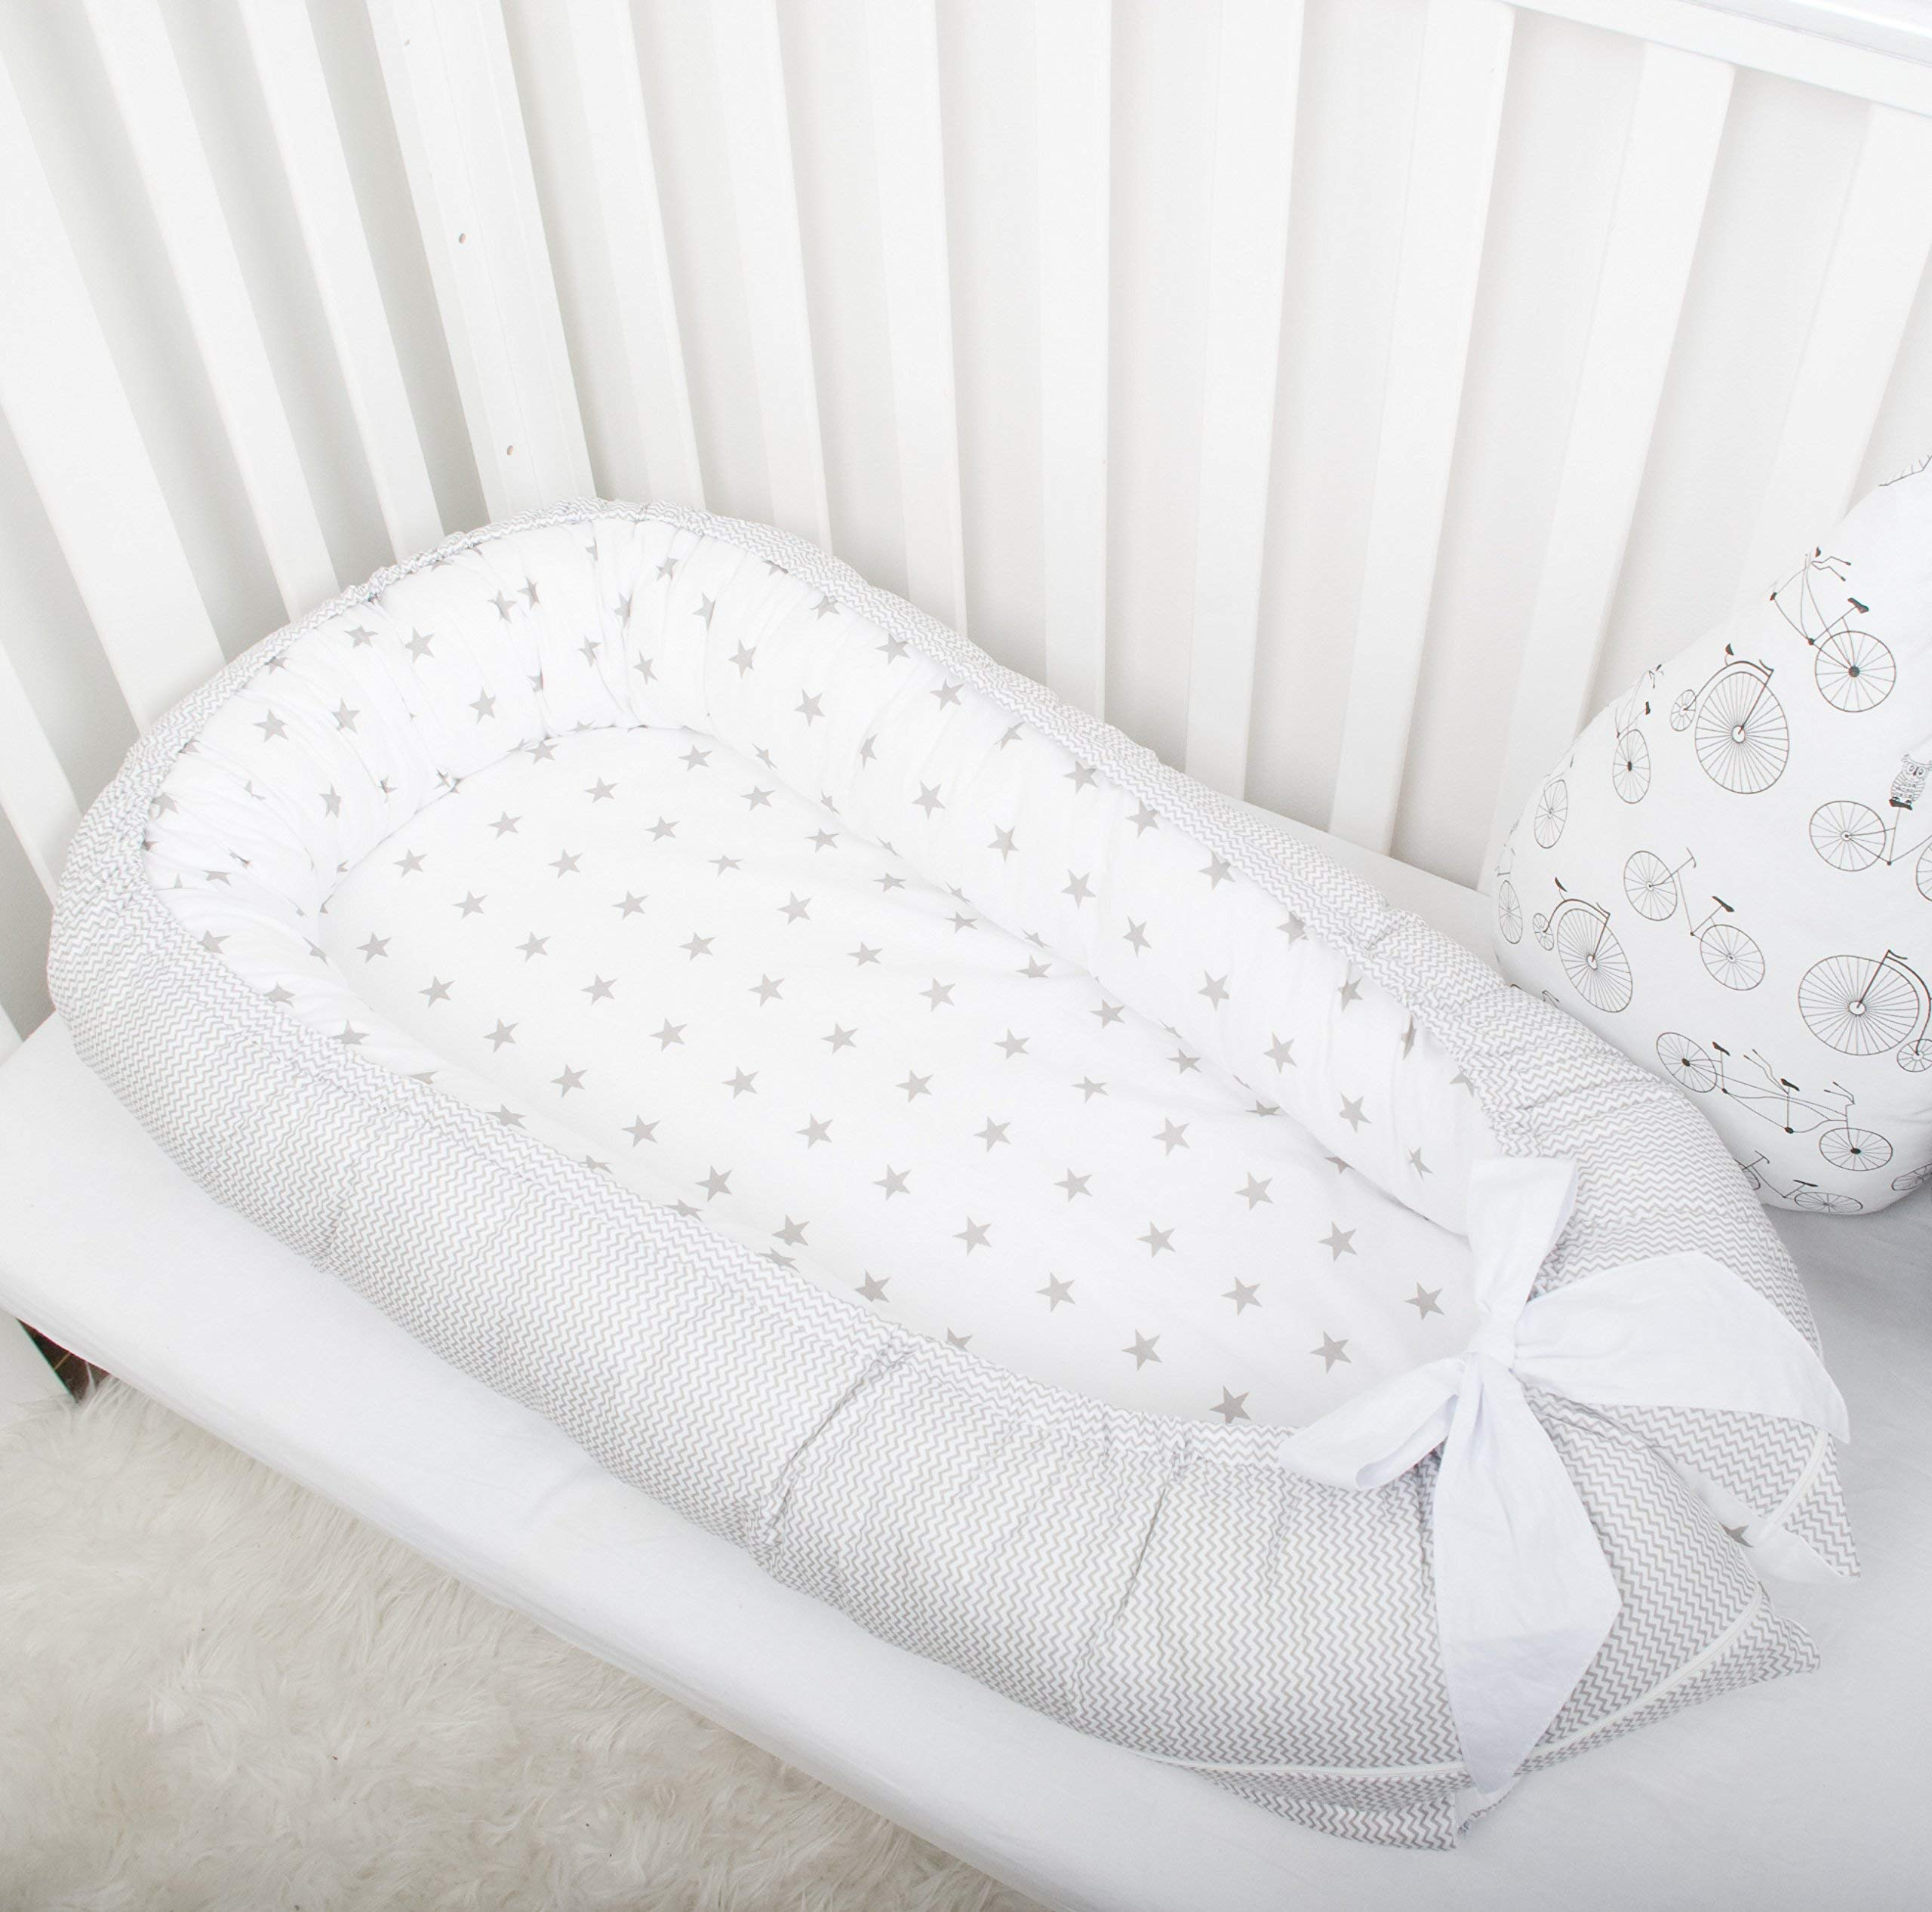 Baby nest bed or toddler size nest, stars and chevron, portable crib, co sleeper babynest for newborn and toddlers